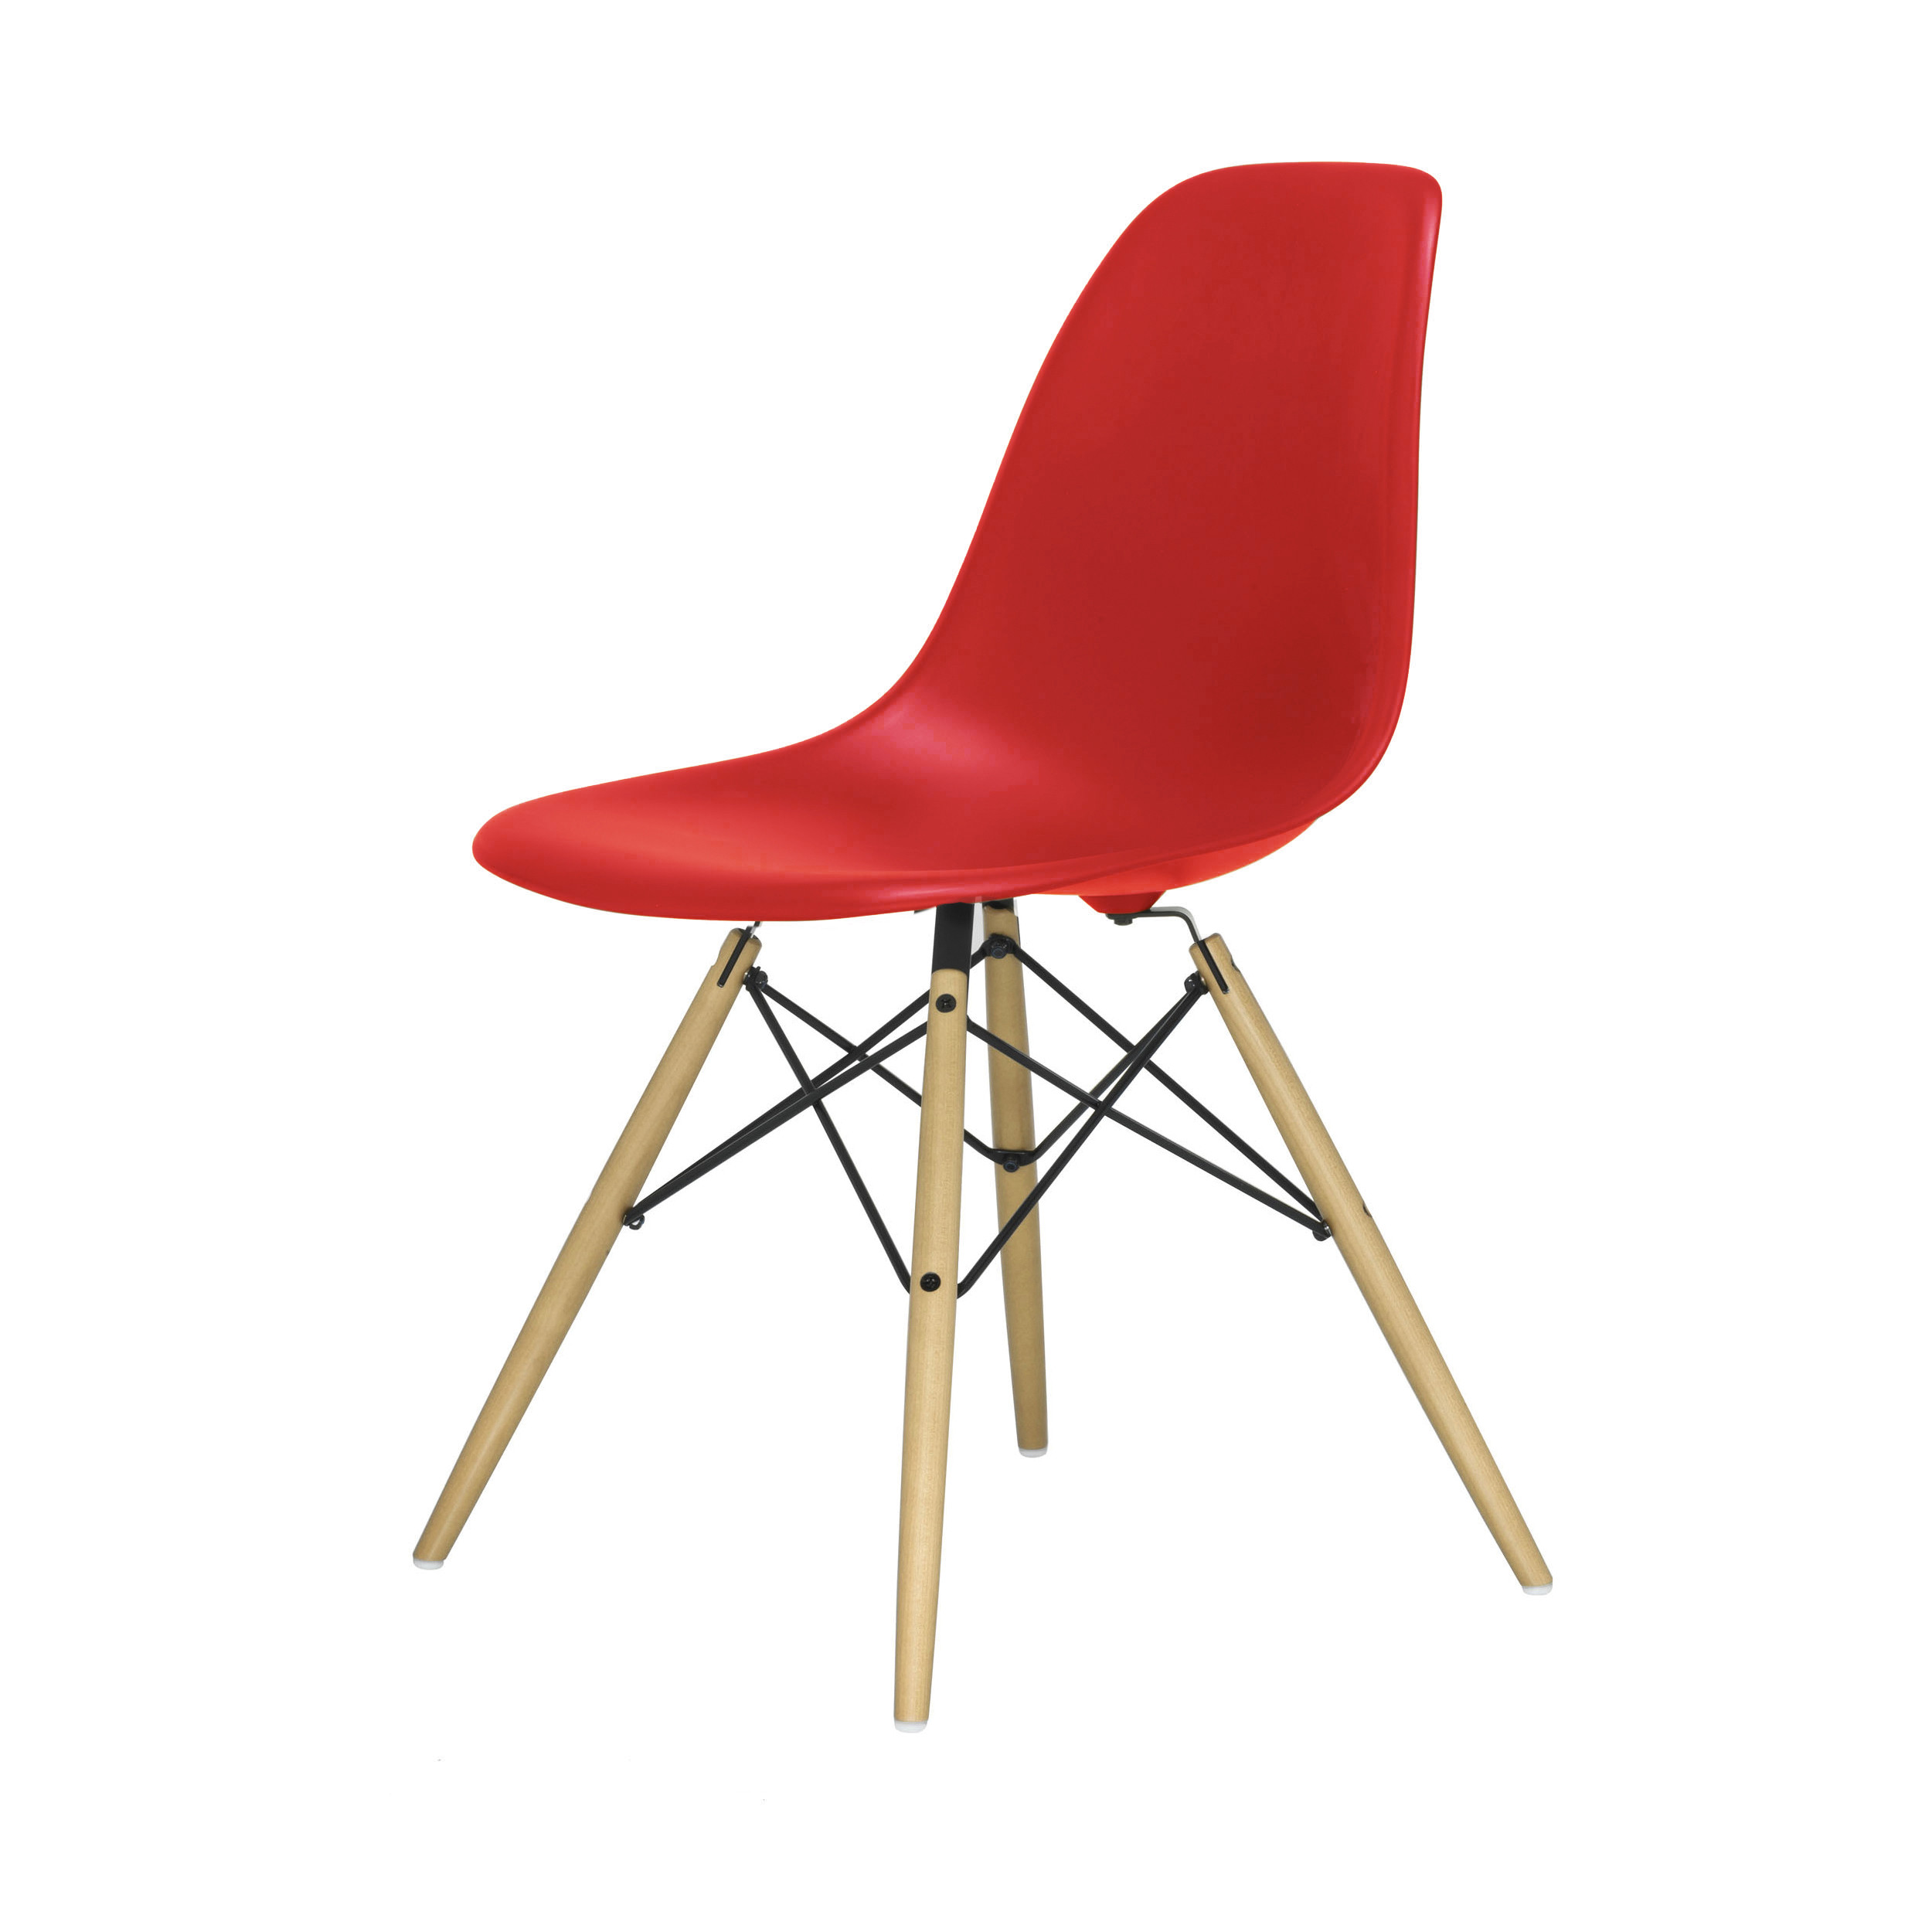 eames plastic side chair stuhl dsw mit kunststoffgleitern. Black Bedroom Furniture Sets. Home Design Ideas